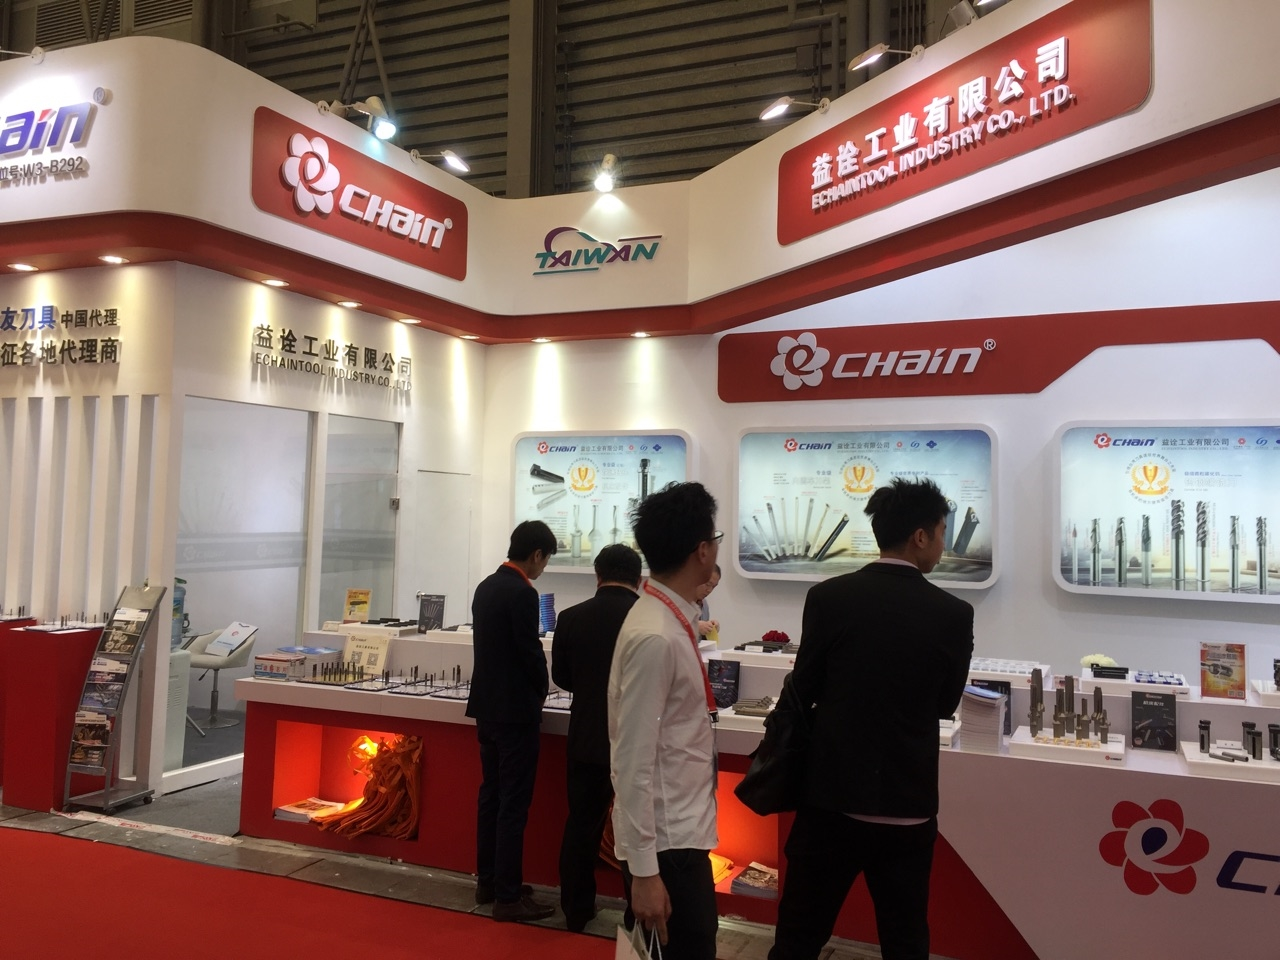 Echaintool promote Indexable cutting tools at CCMT2020 Exhibition.